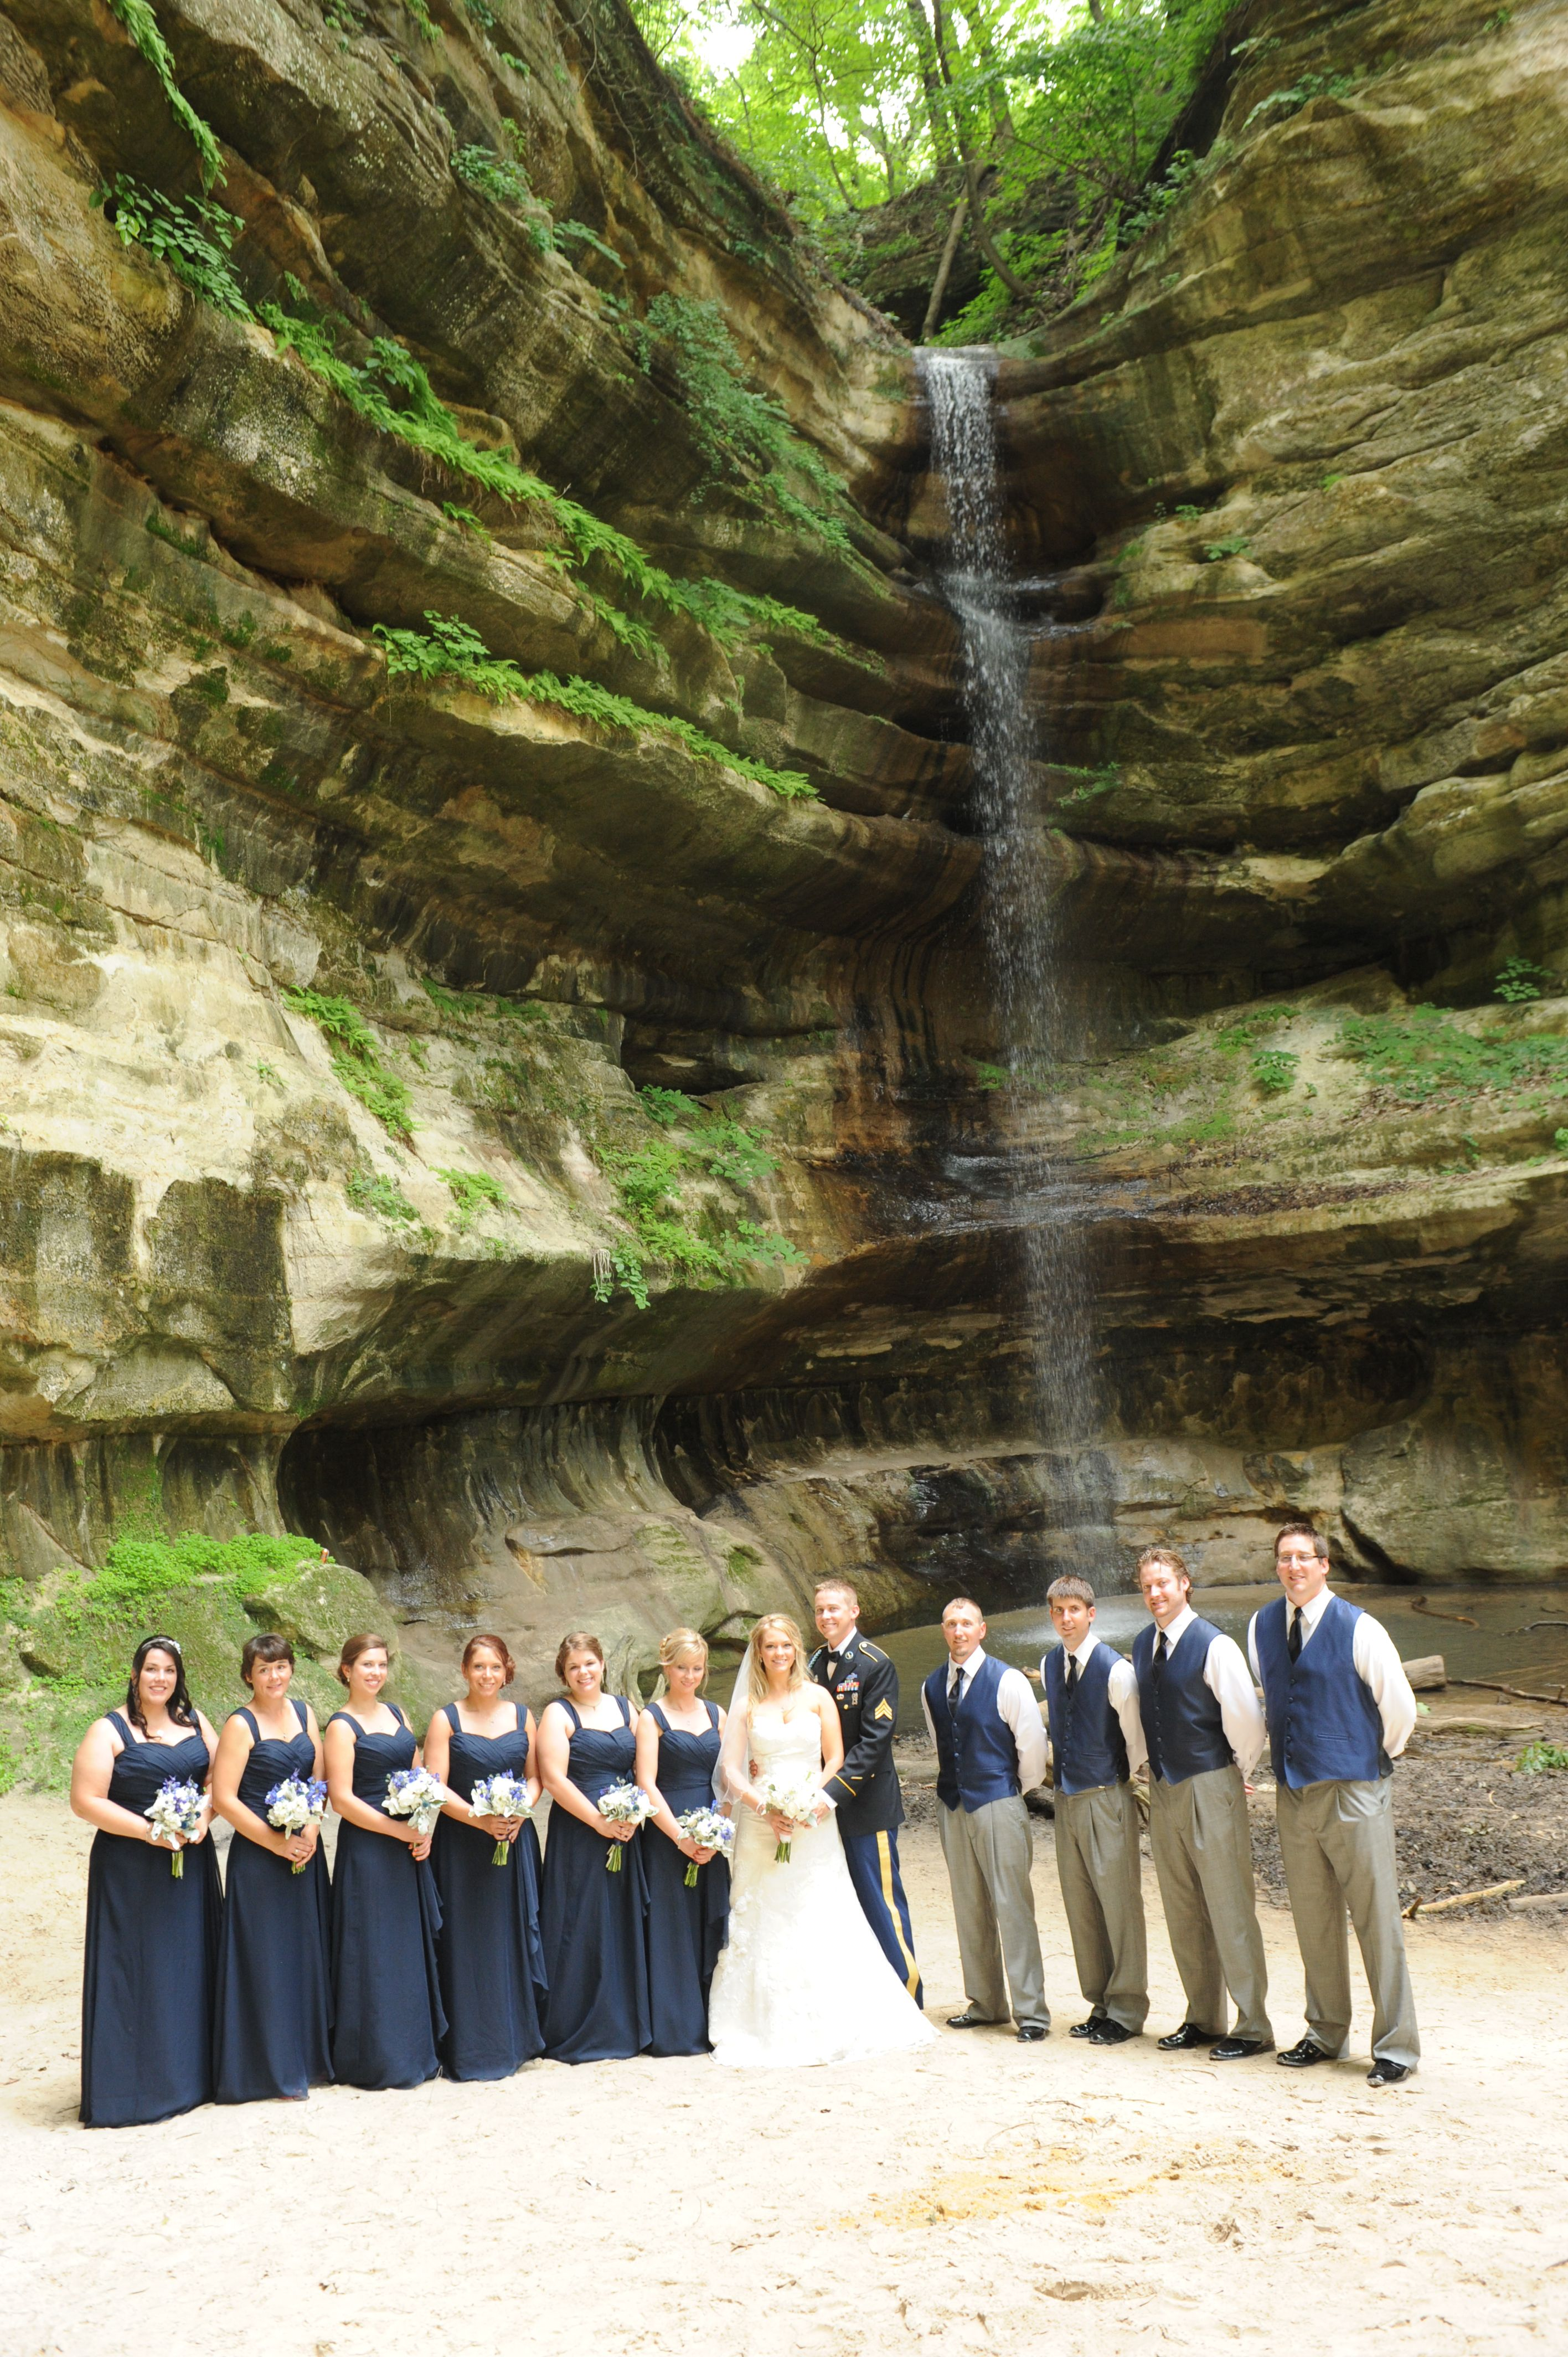 I Love Starved Rock State Park S St Louis Canyon For Wedding Photos The Group Are Stunning At This Location Photo By Kathy Ctevens